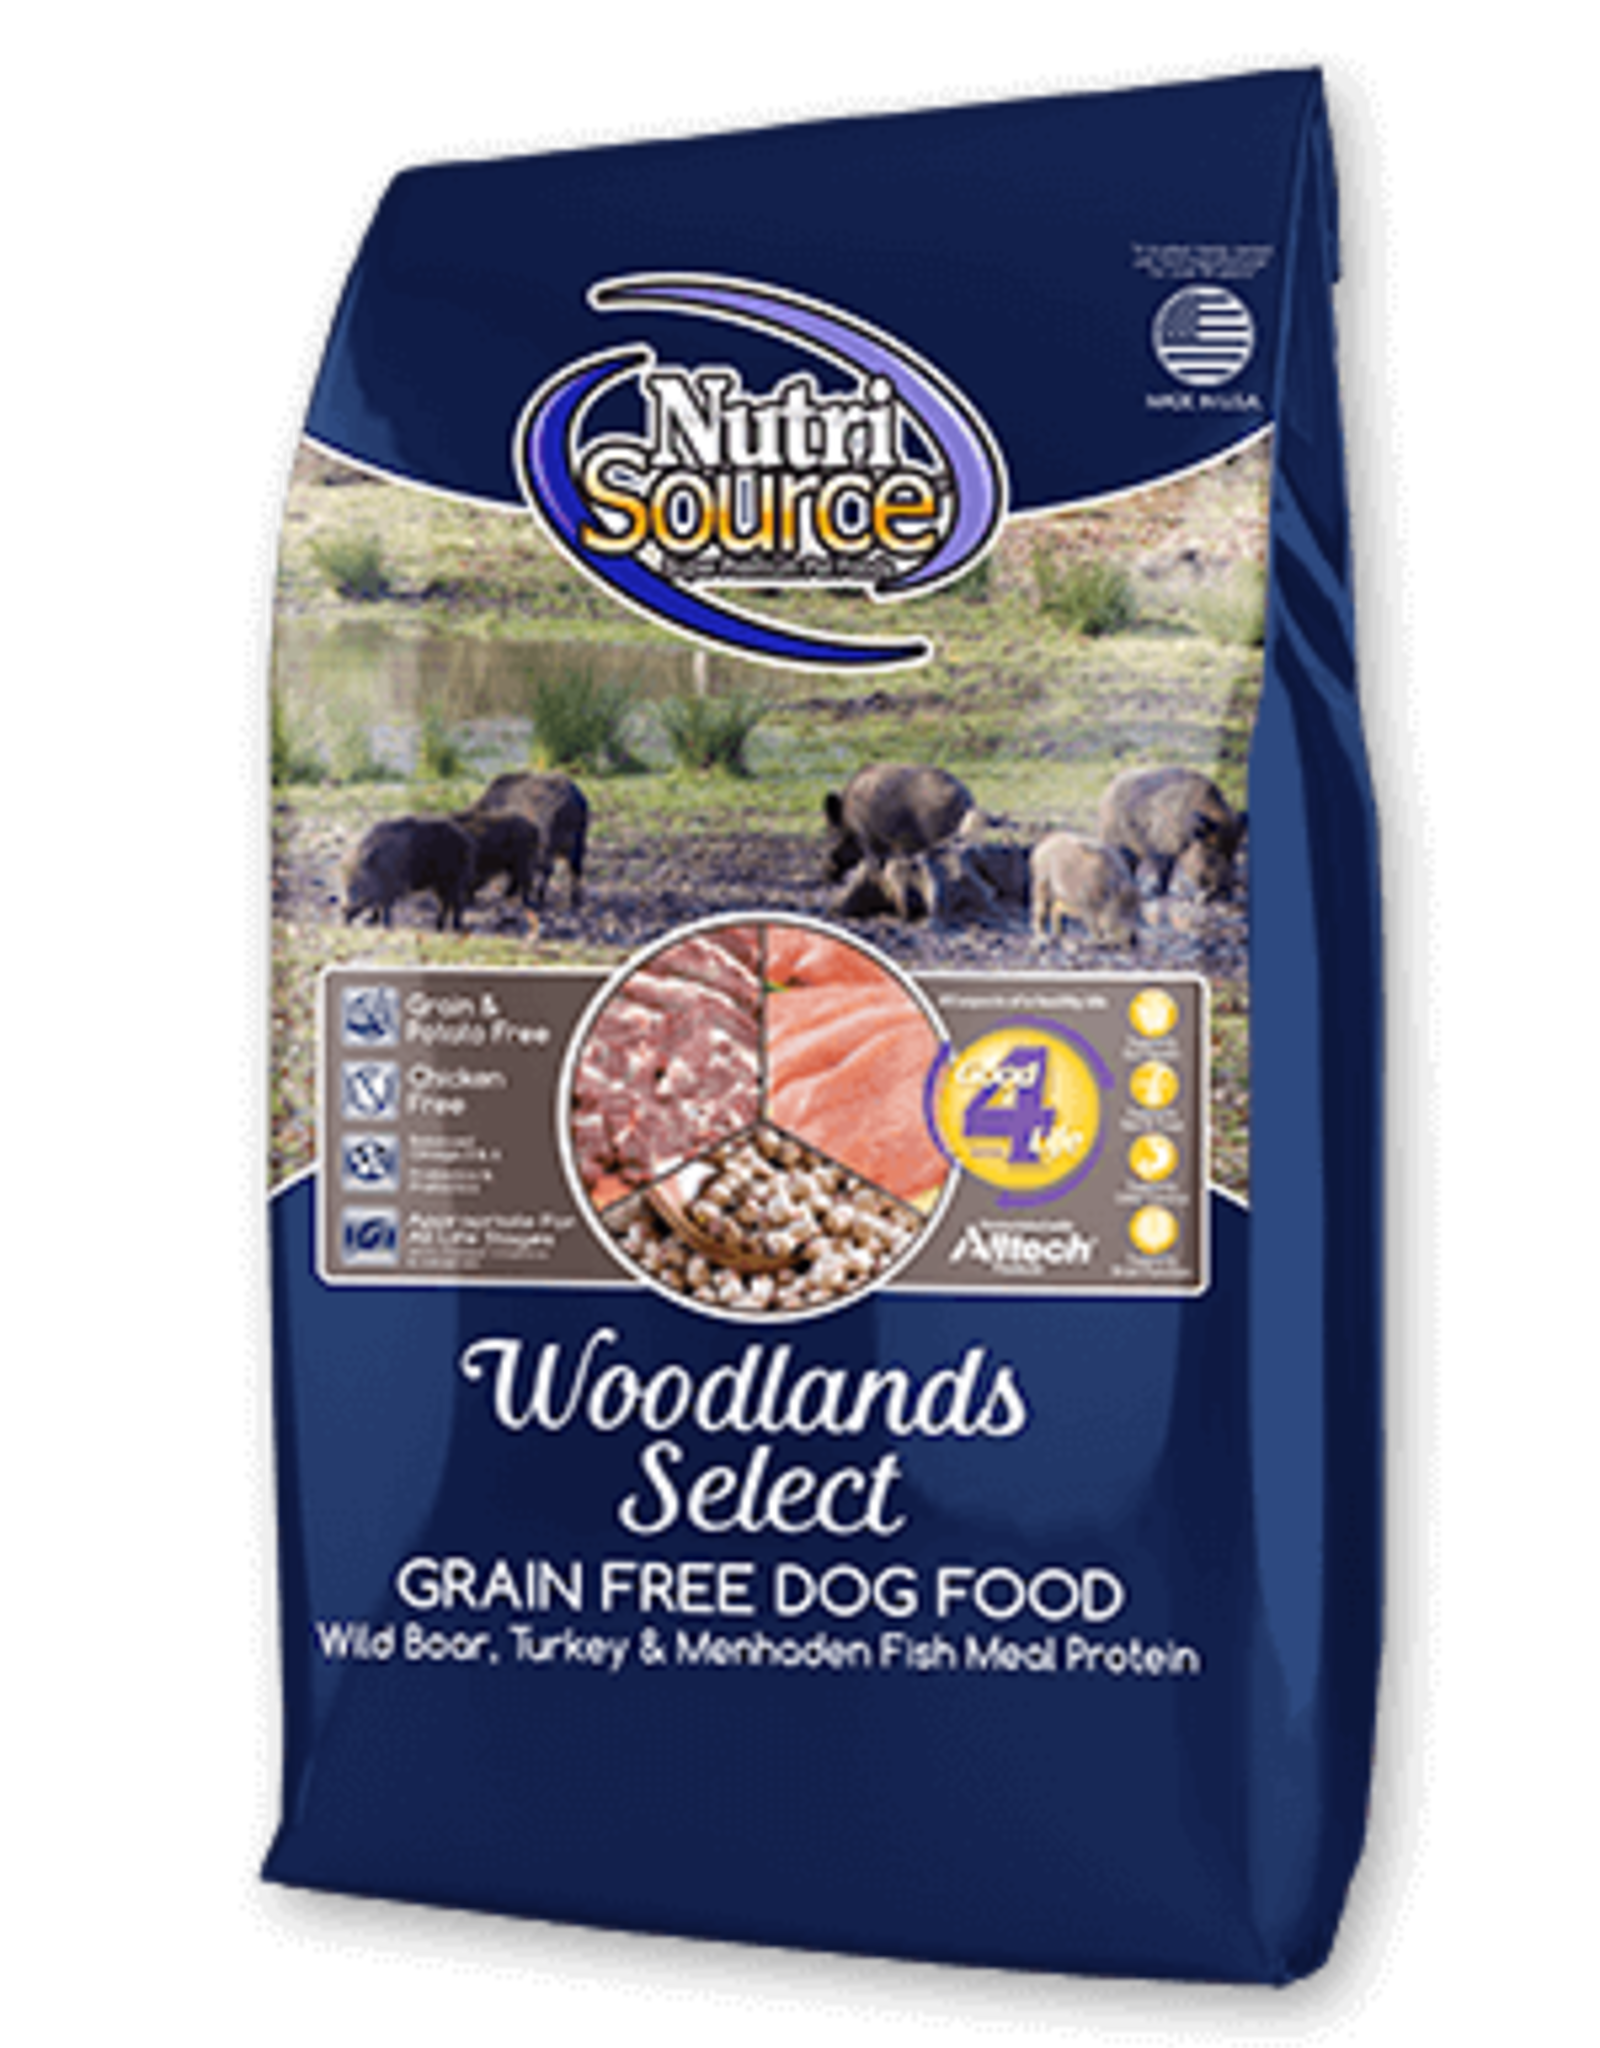 Nutrisource GF Dog Food Woodland Select